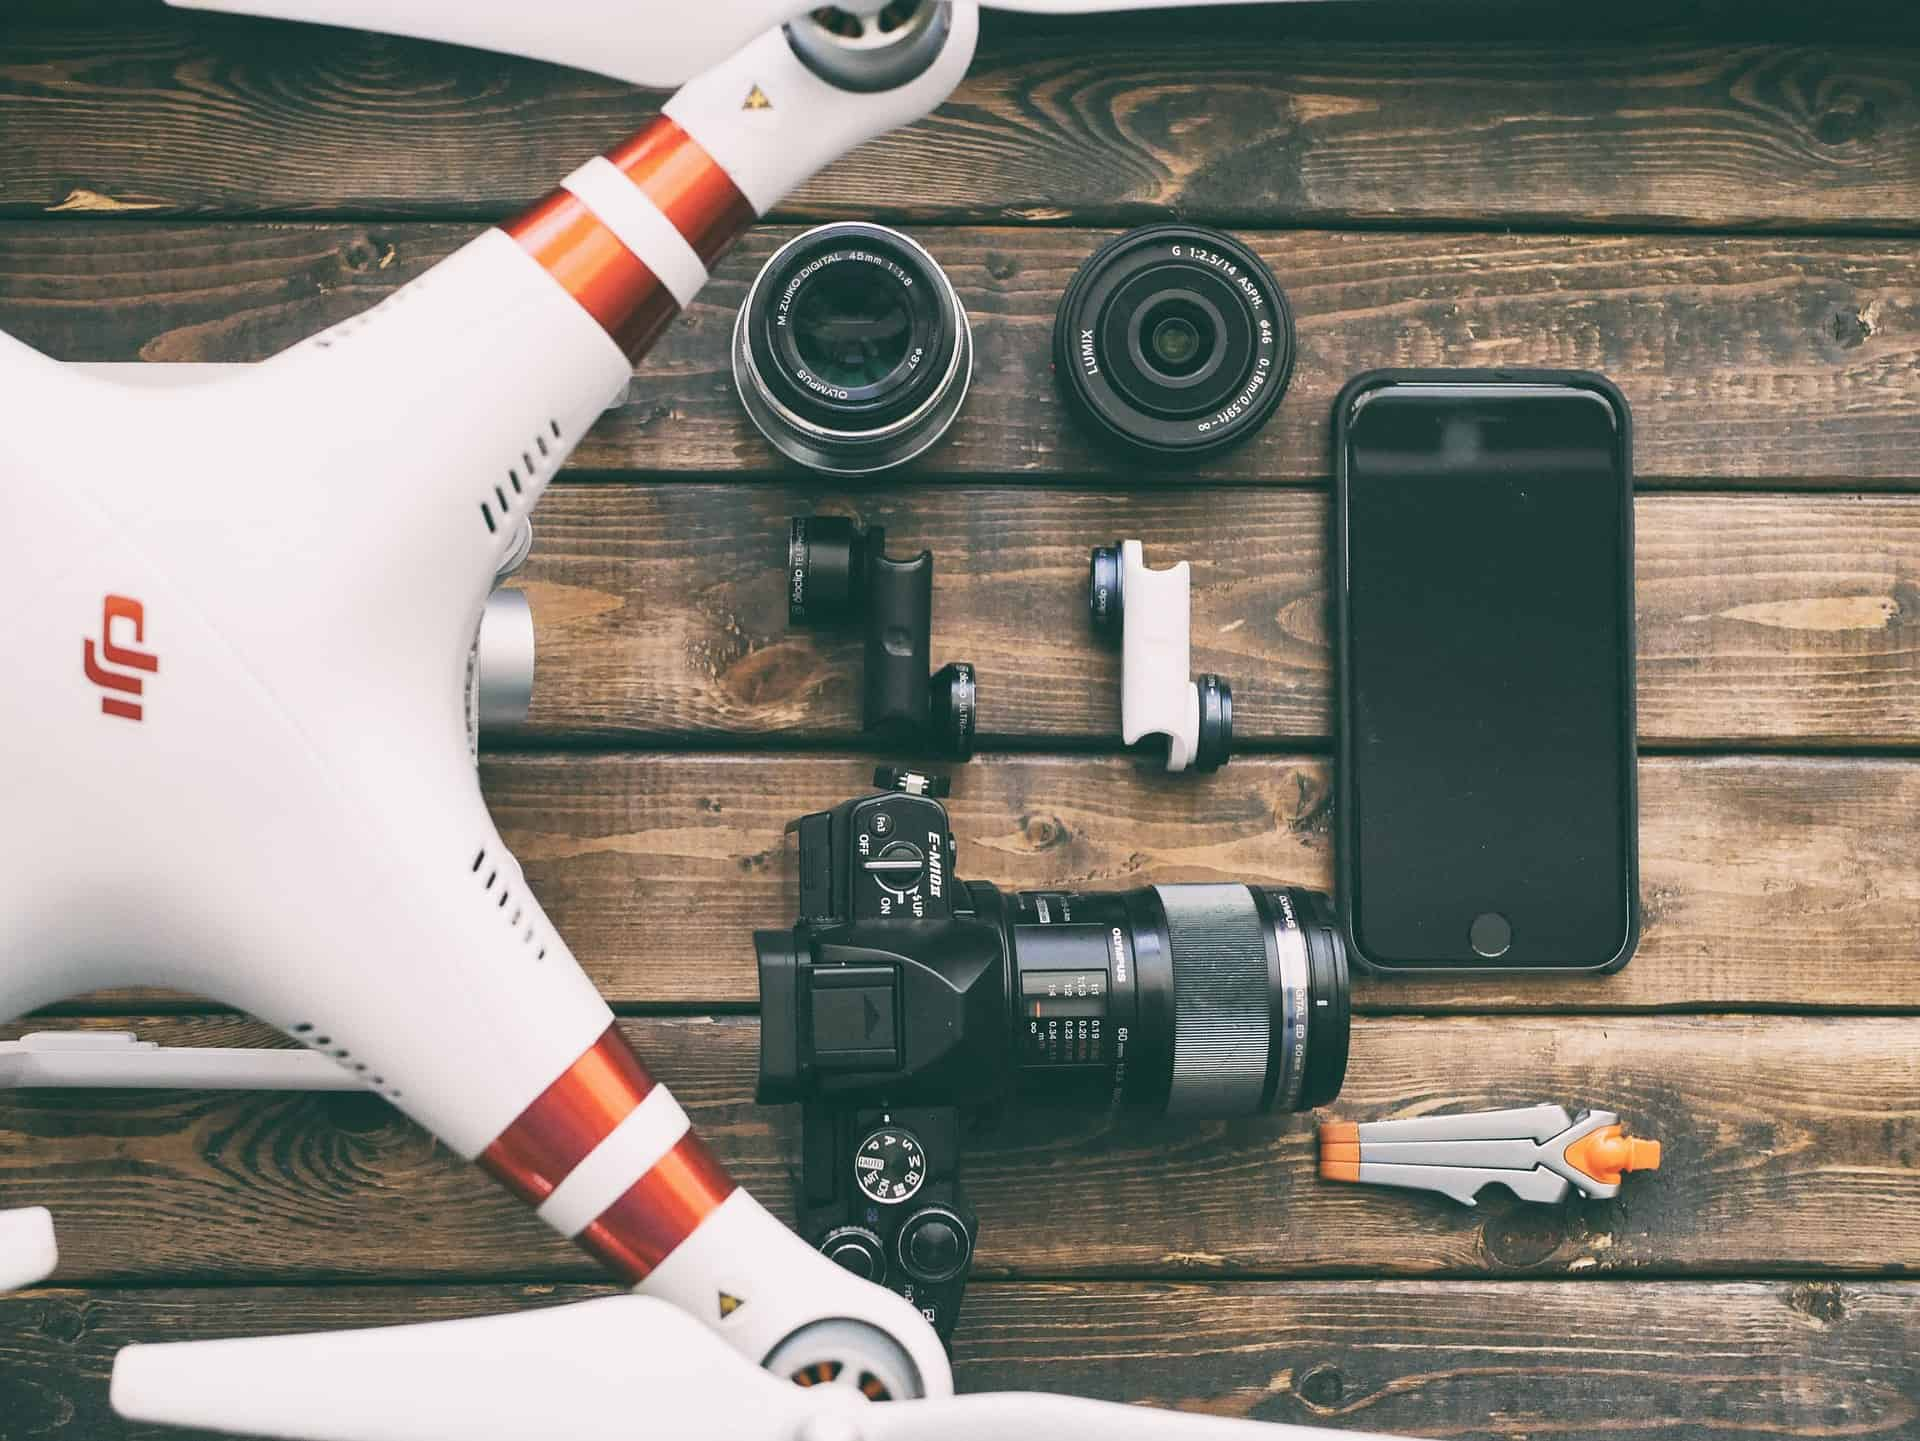 Cool Reasons To Choose The Parrot Drone